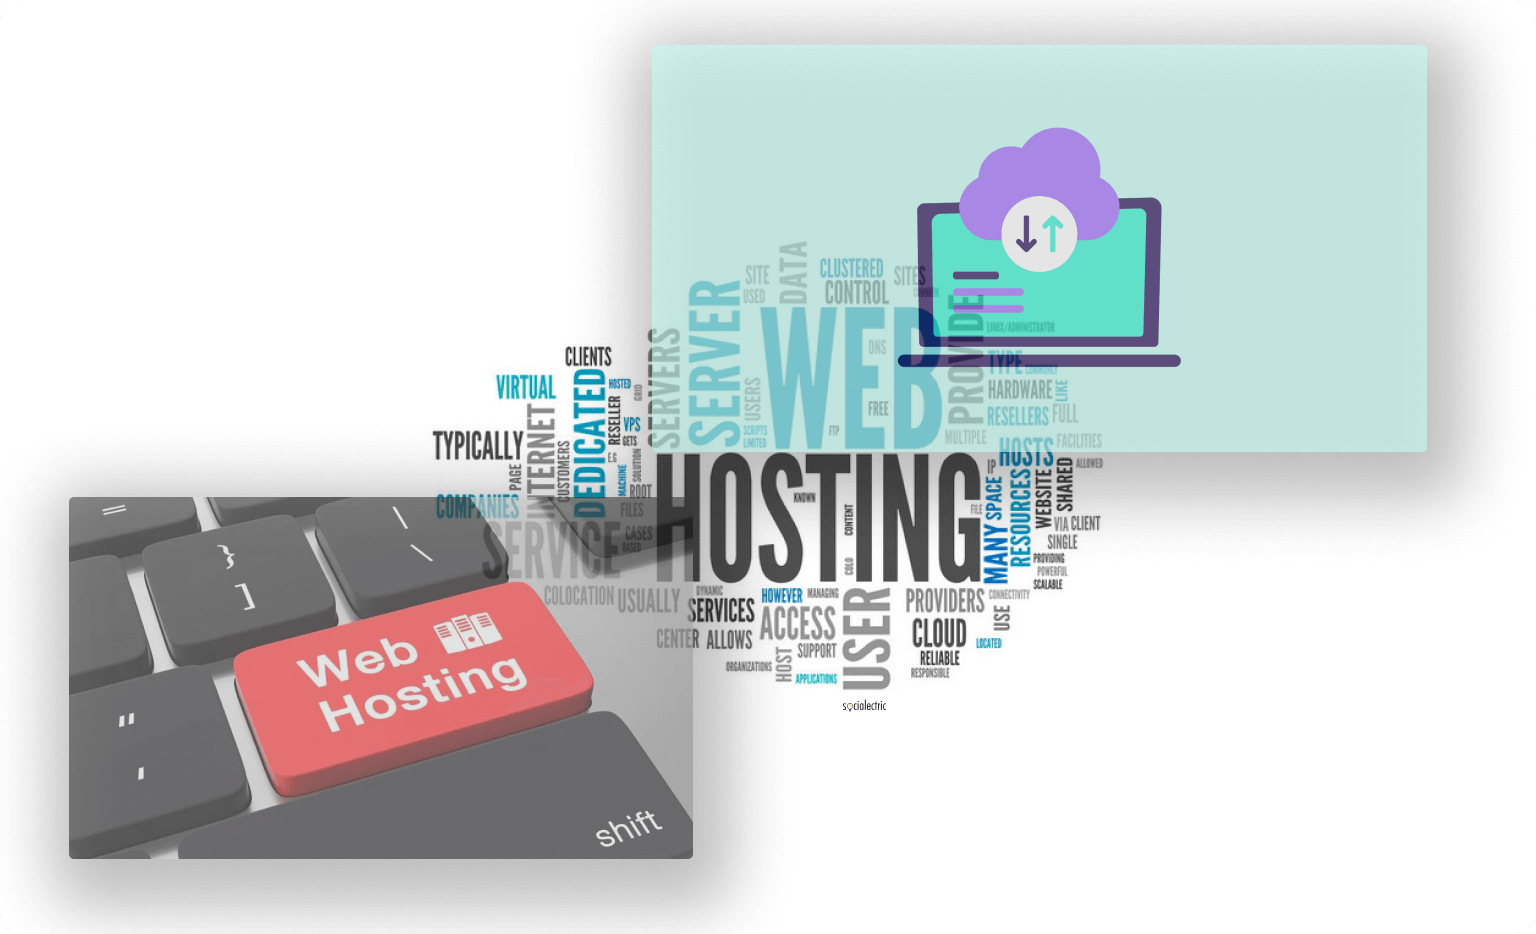 The-simple-definition-of-web-hosting-that-website-owner-should-know